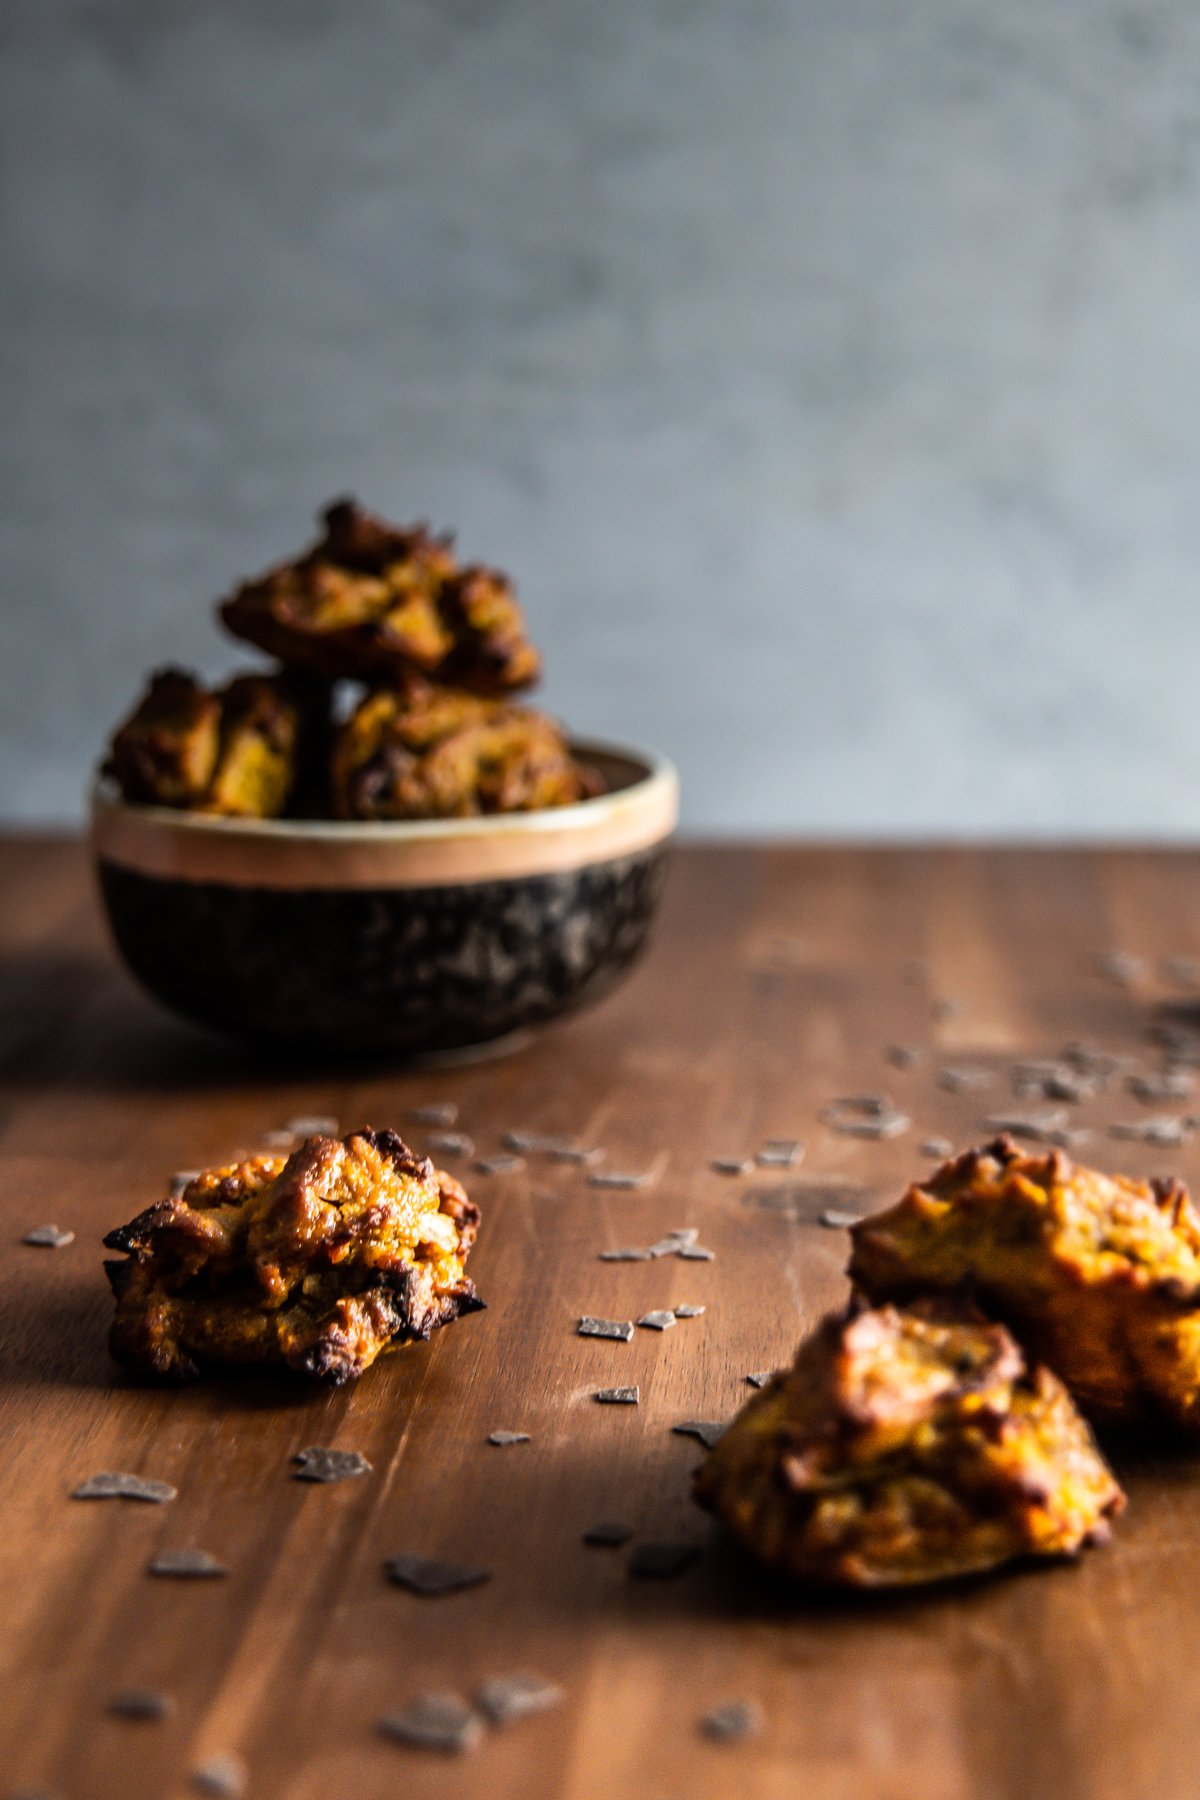 Chewy Pumpkin Spice Chocolate Cookies strewn on a wooden board with some cookies stacked in a bowl in the background